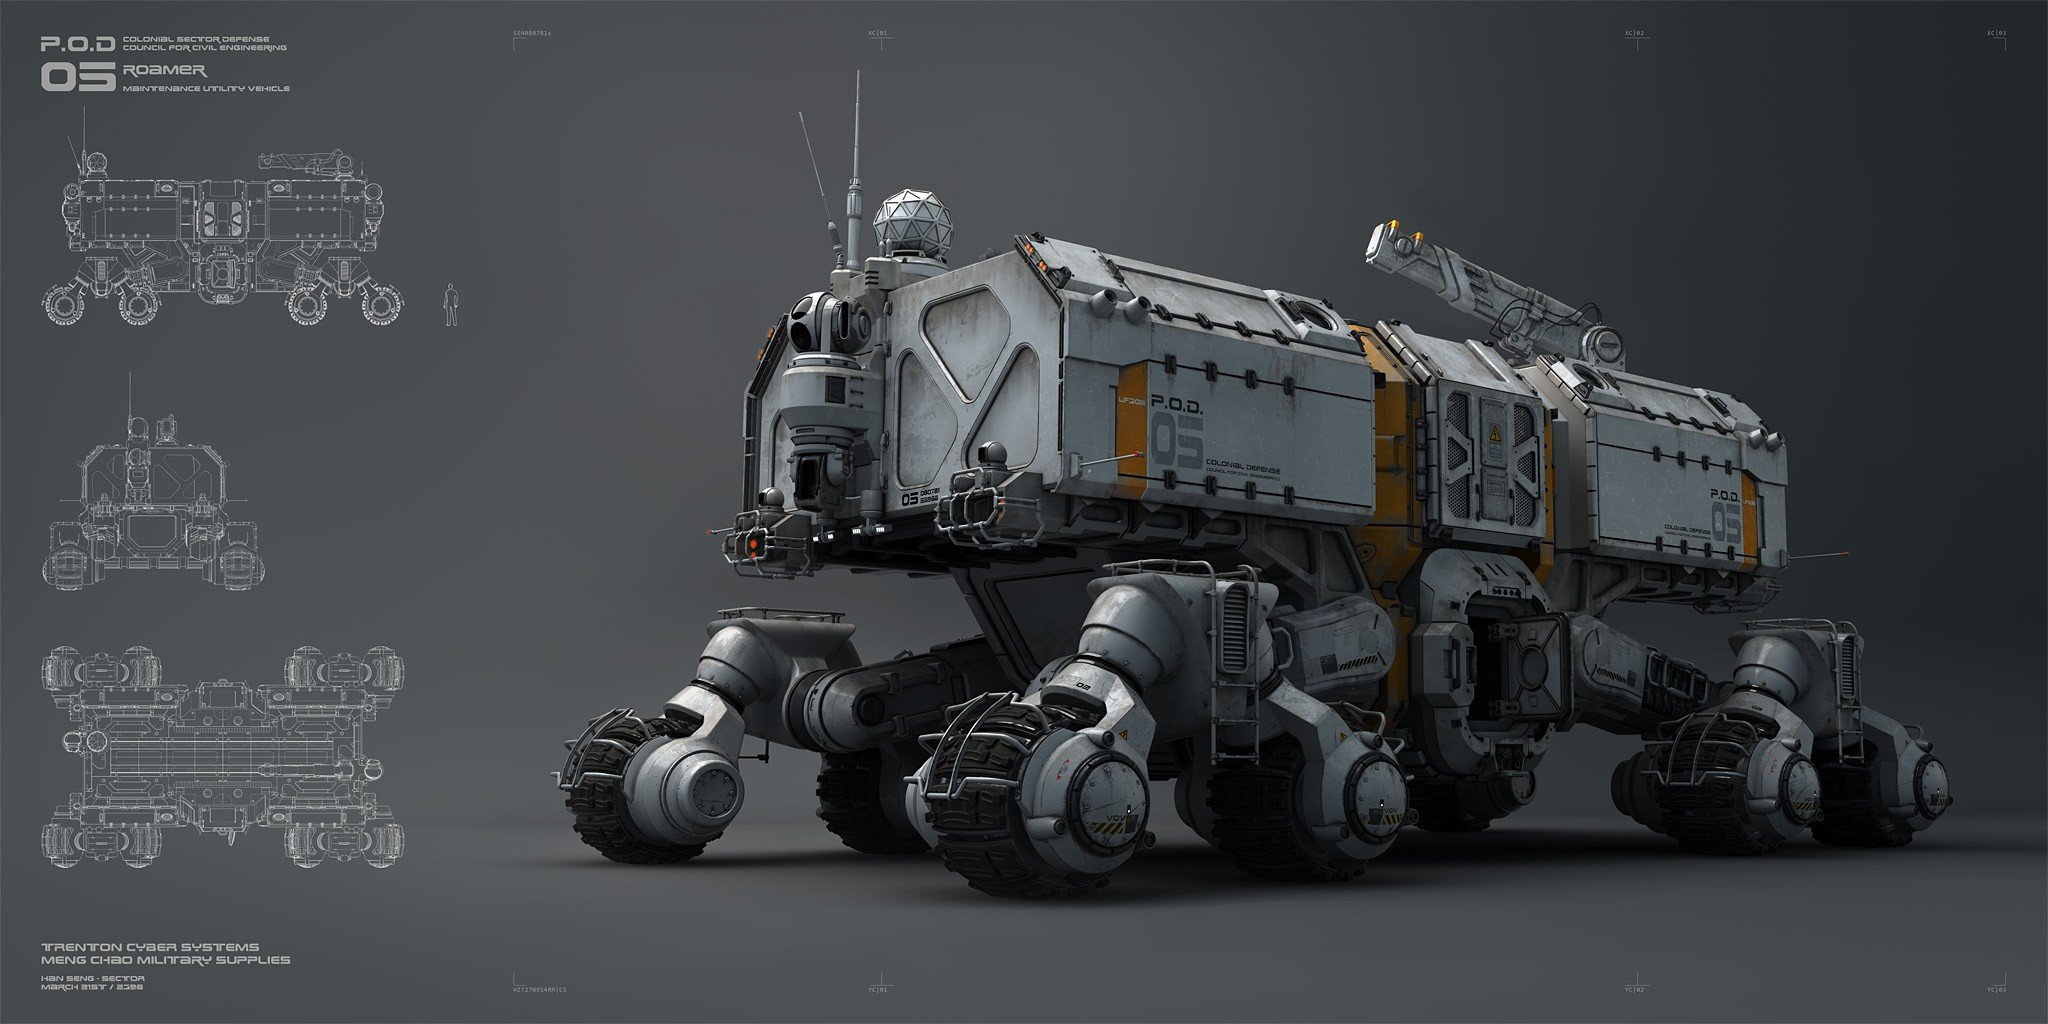 ROAMER - High resolution vehicle